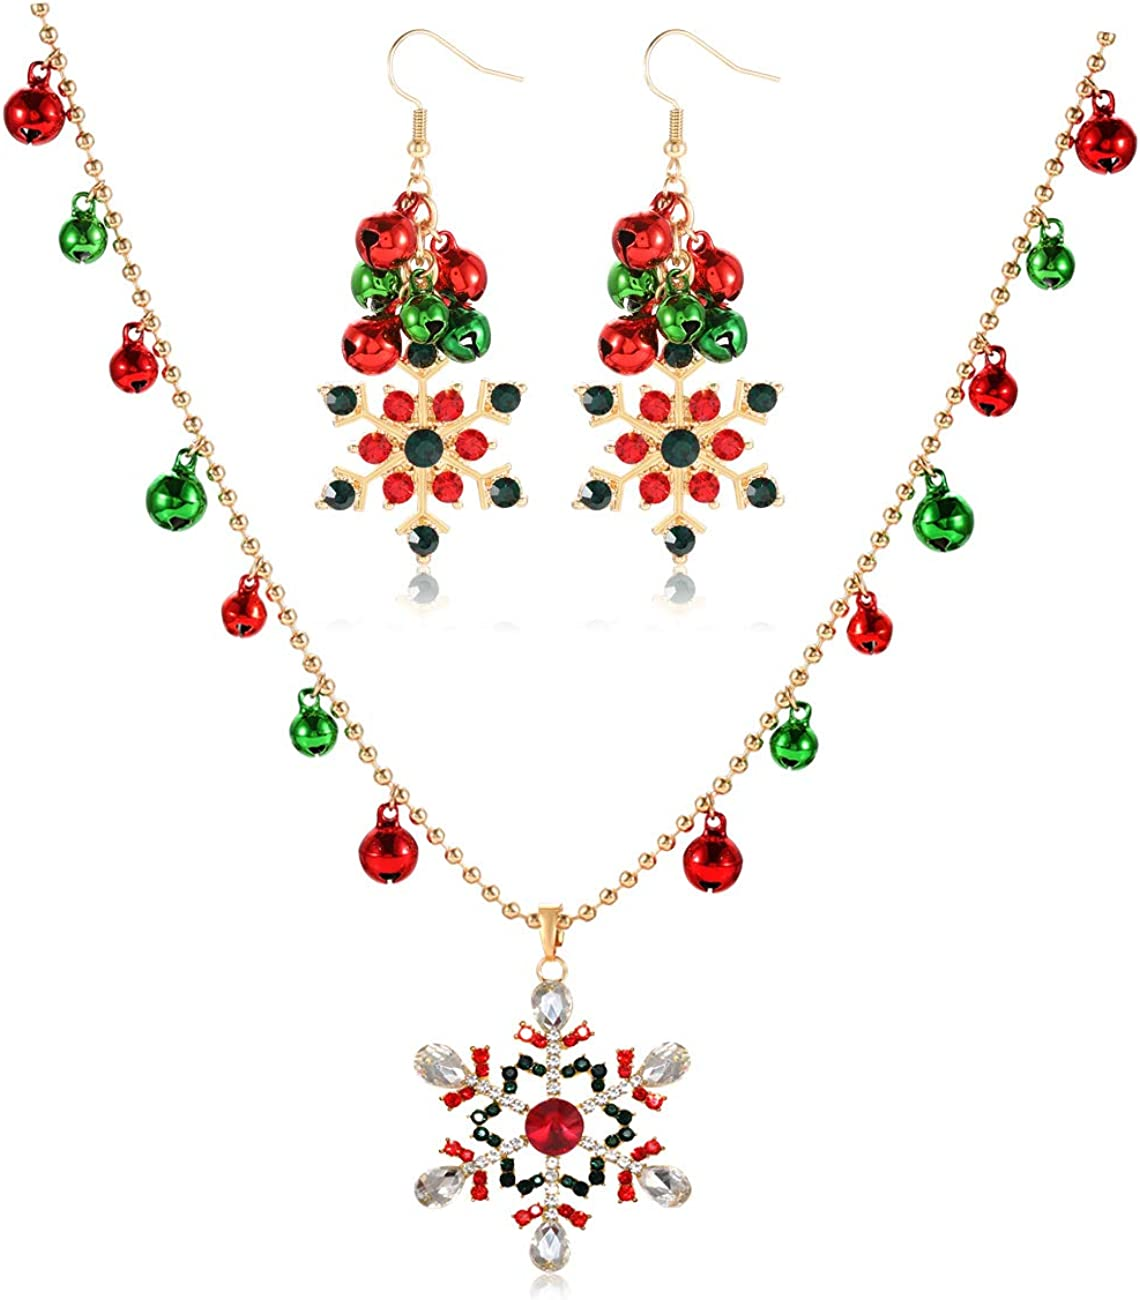 Christmas Earrings Necklace Jewelry Set Colorful Jingle Bells Dangle Earrings Long Bells Beaded Chain Snowflake Charm Pendant Necklace Xmas Festive Holiday Party Gift for Women Girls